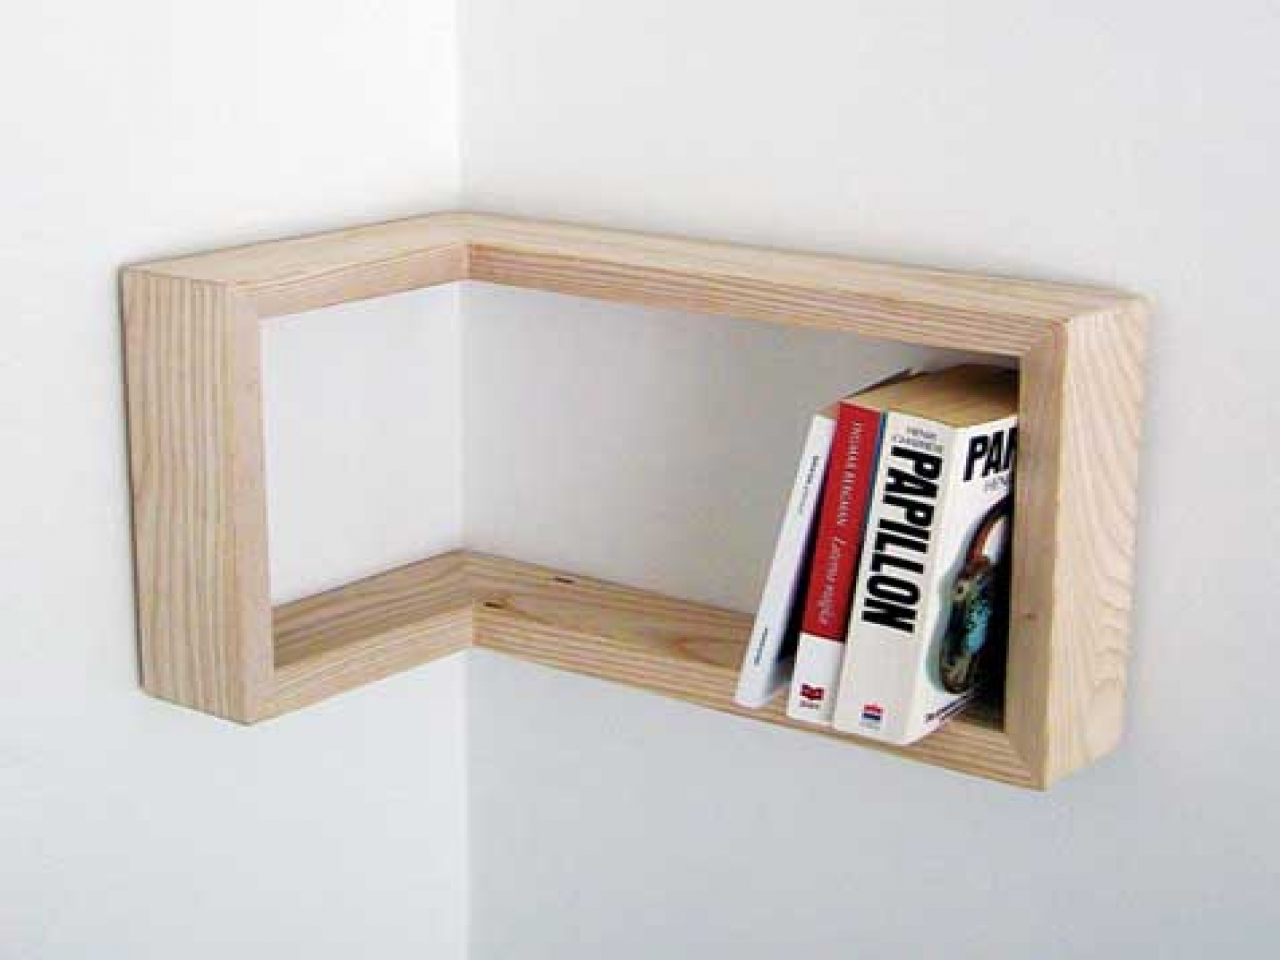 15 ways to diy creative corner shelves. Black Bedroom Furniture Sets. Home Design Ideas